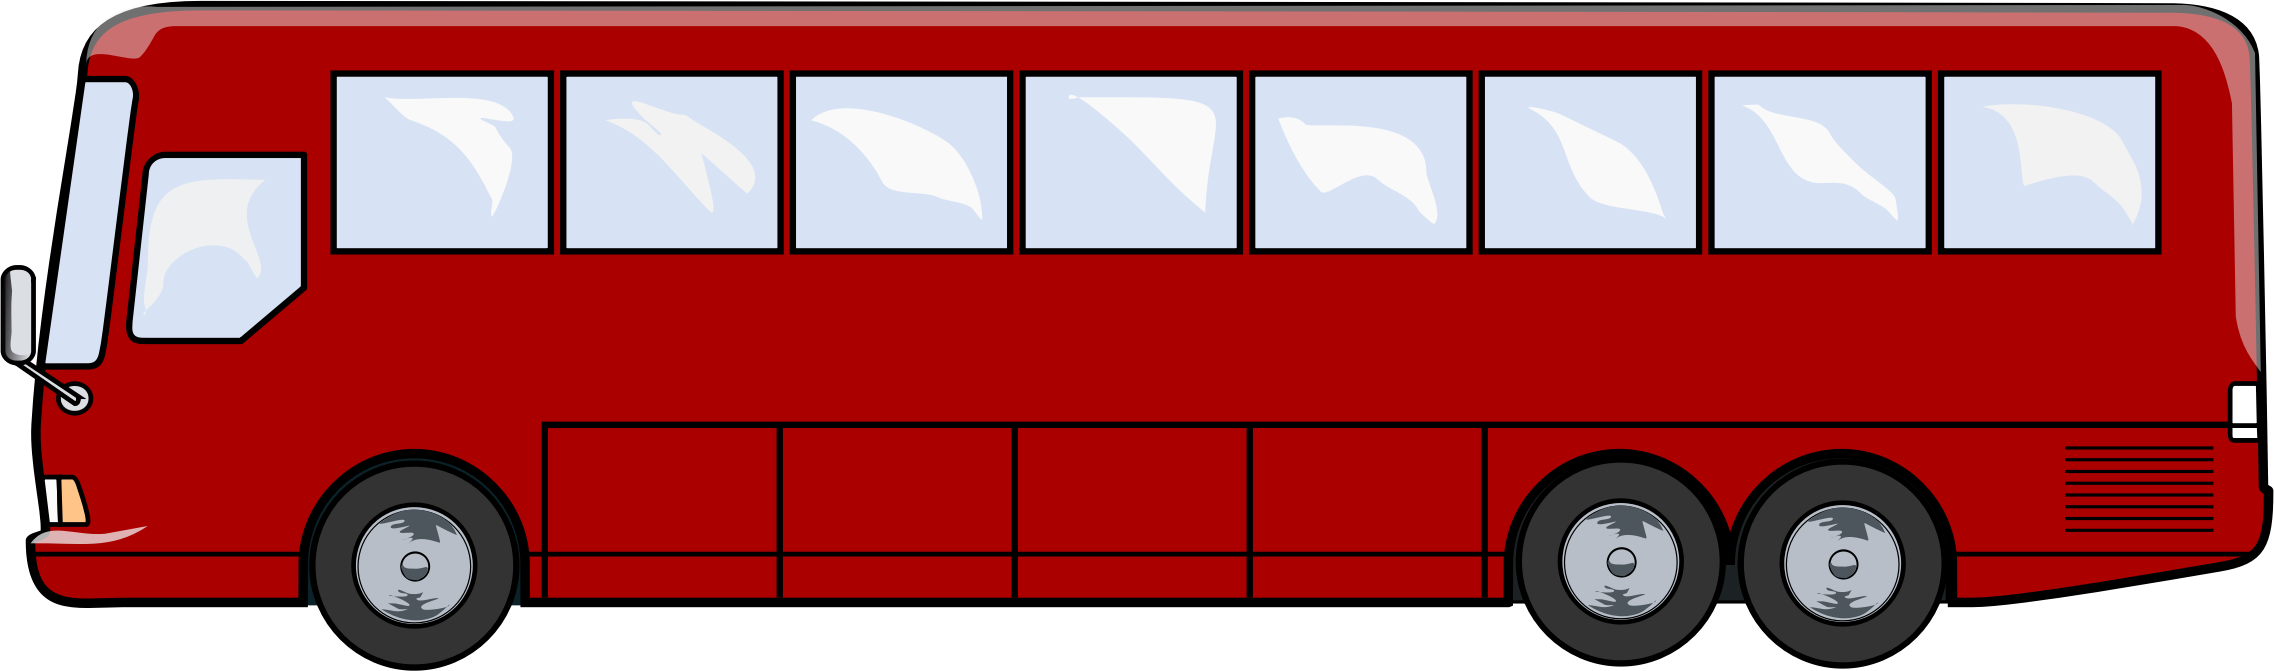 Bus clipart side view.  collection of city